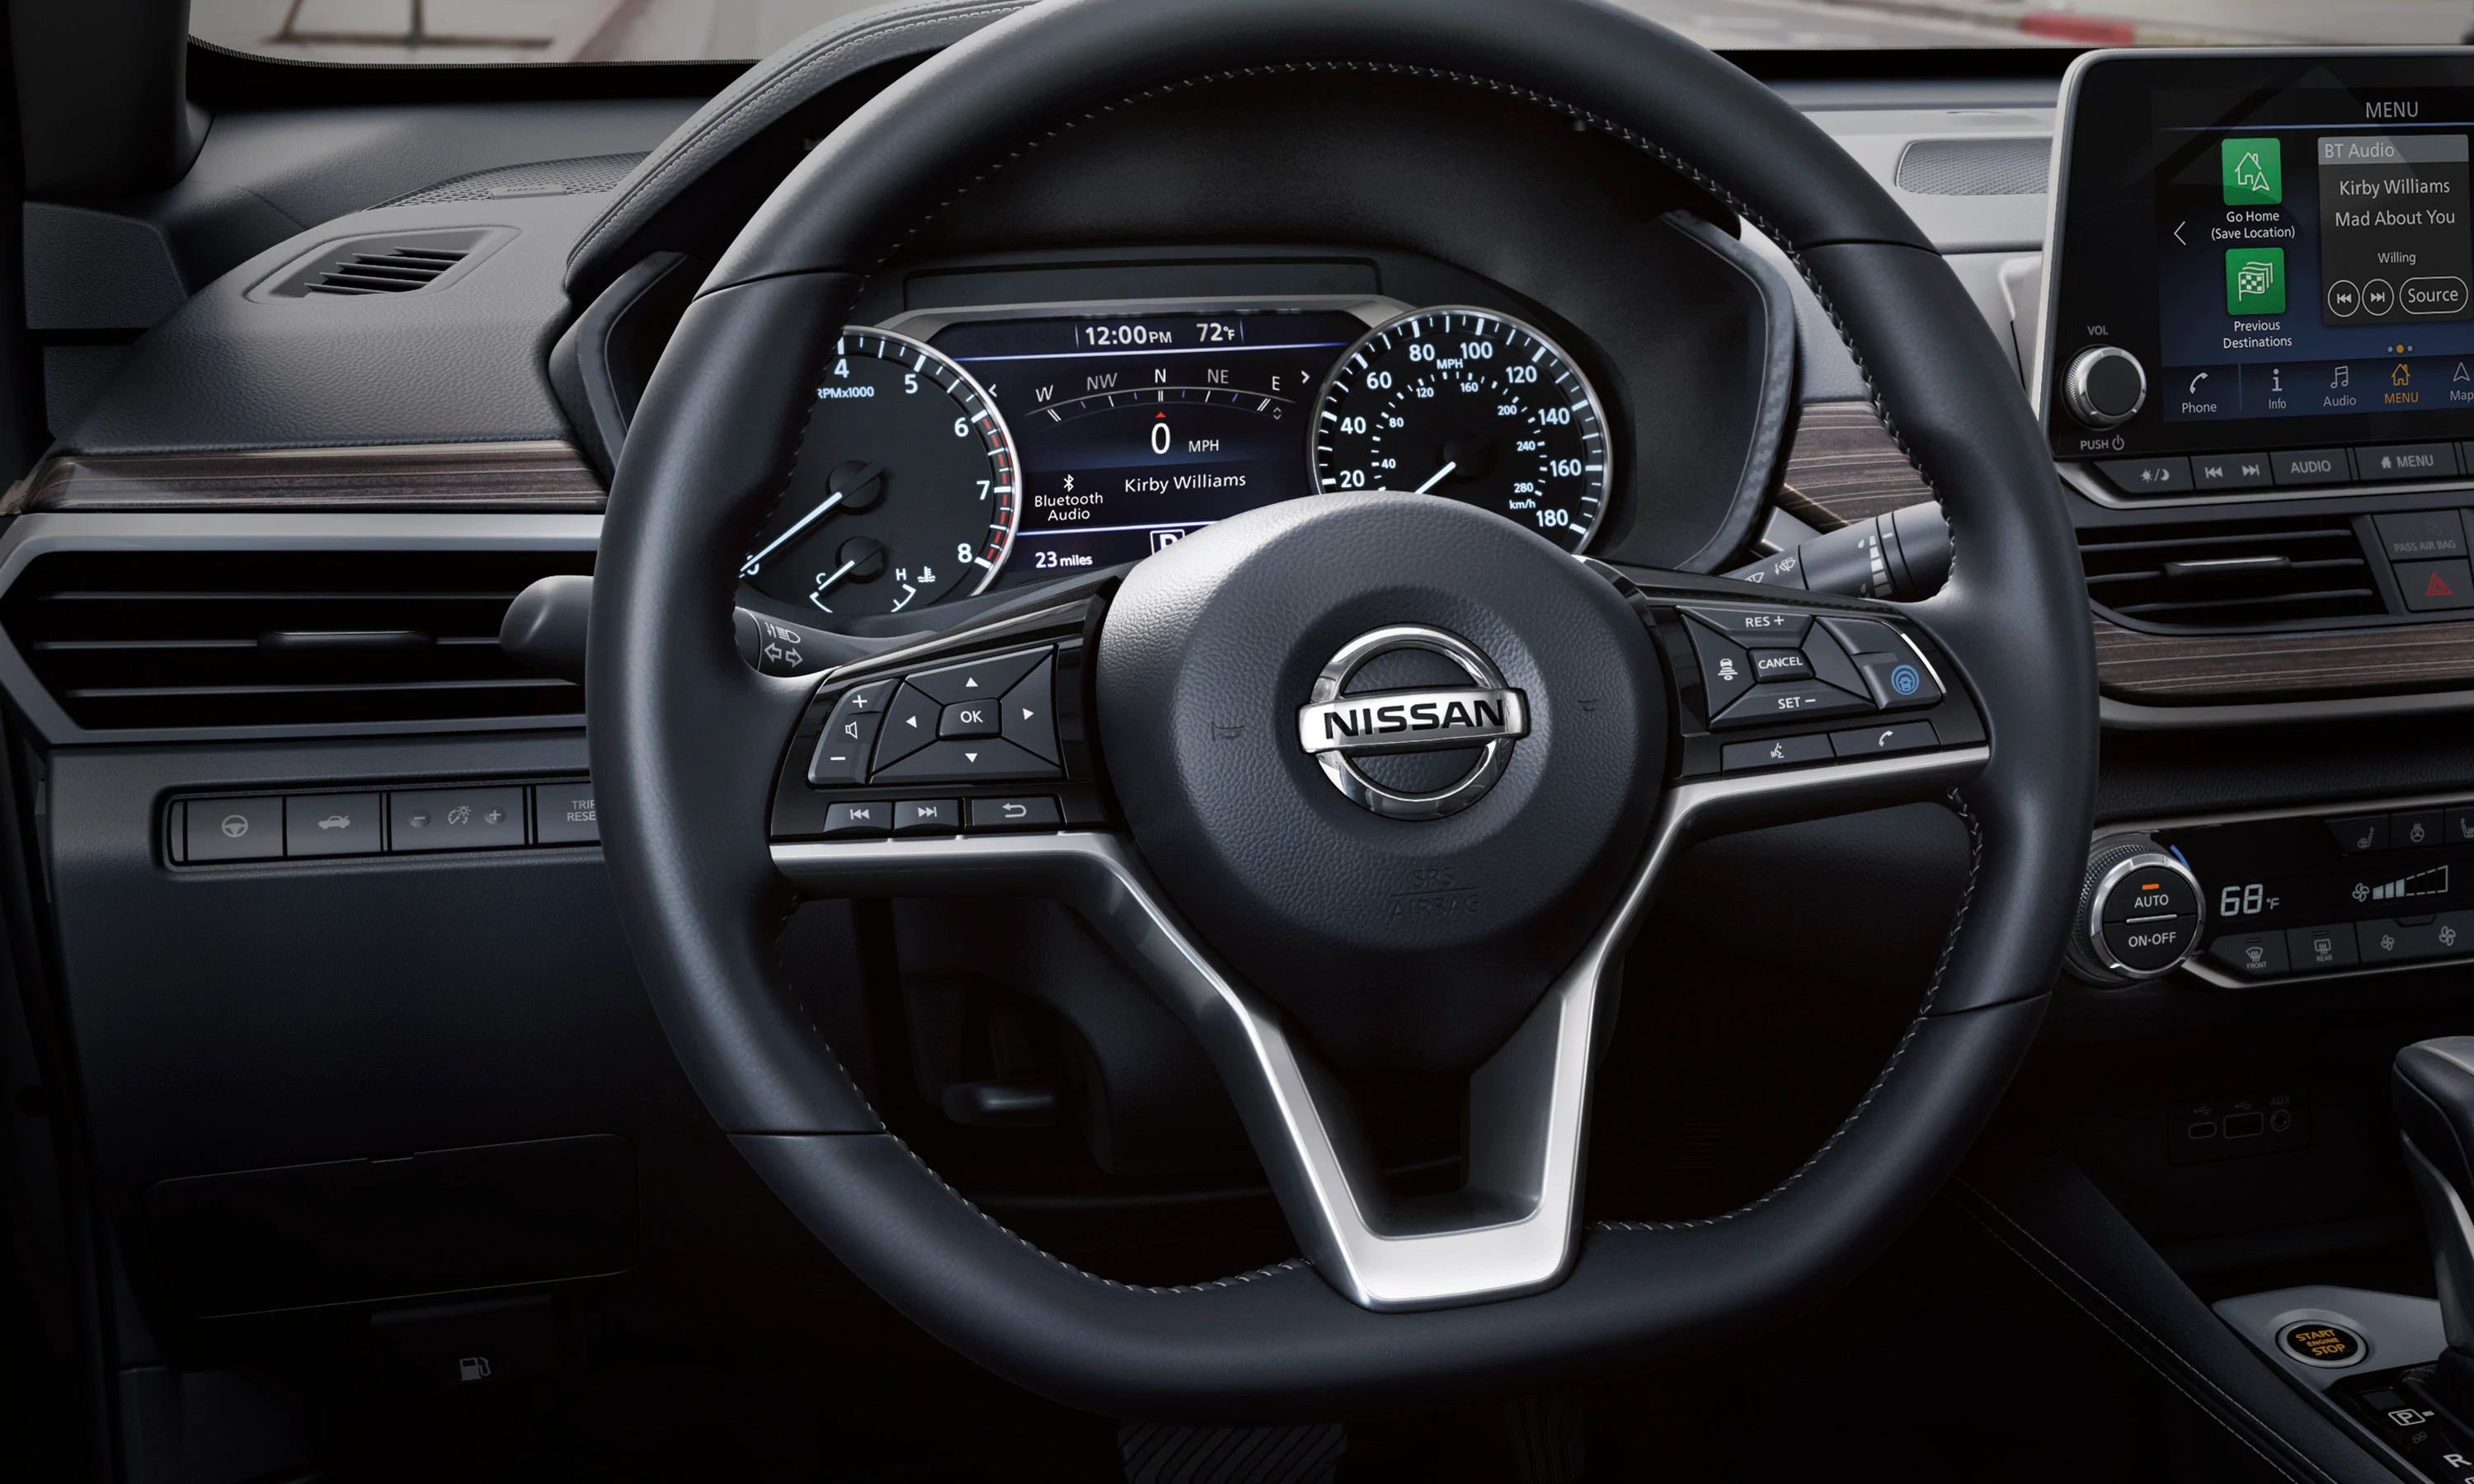 2019 Nissan Altima Steering Wheel